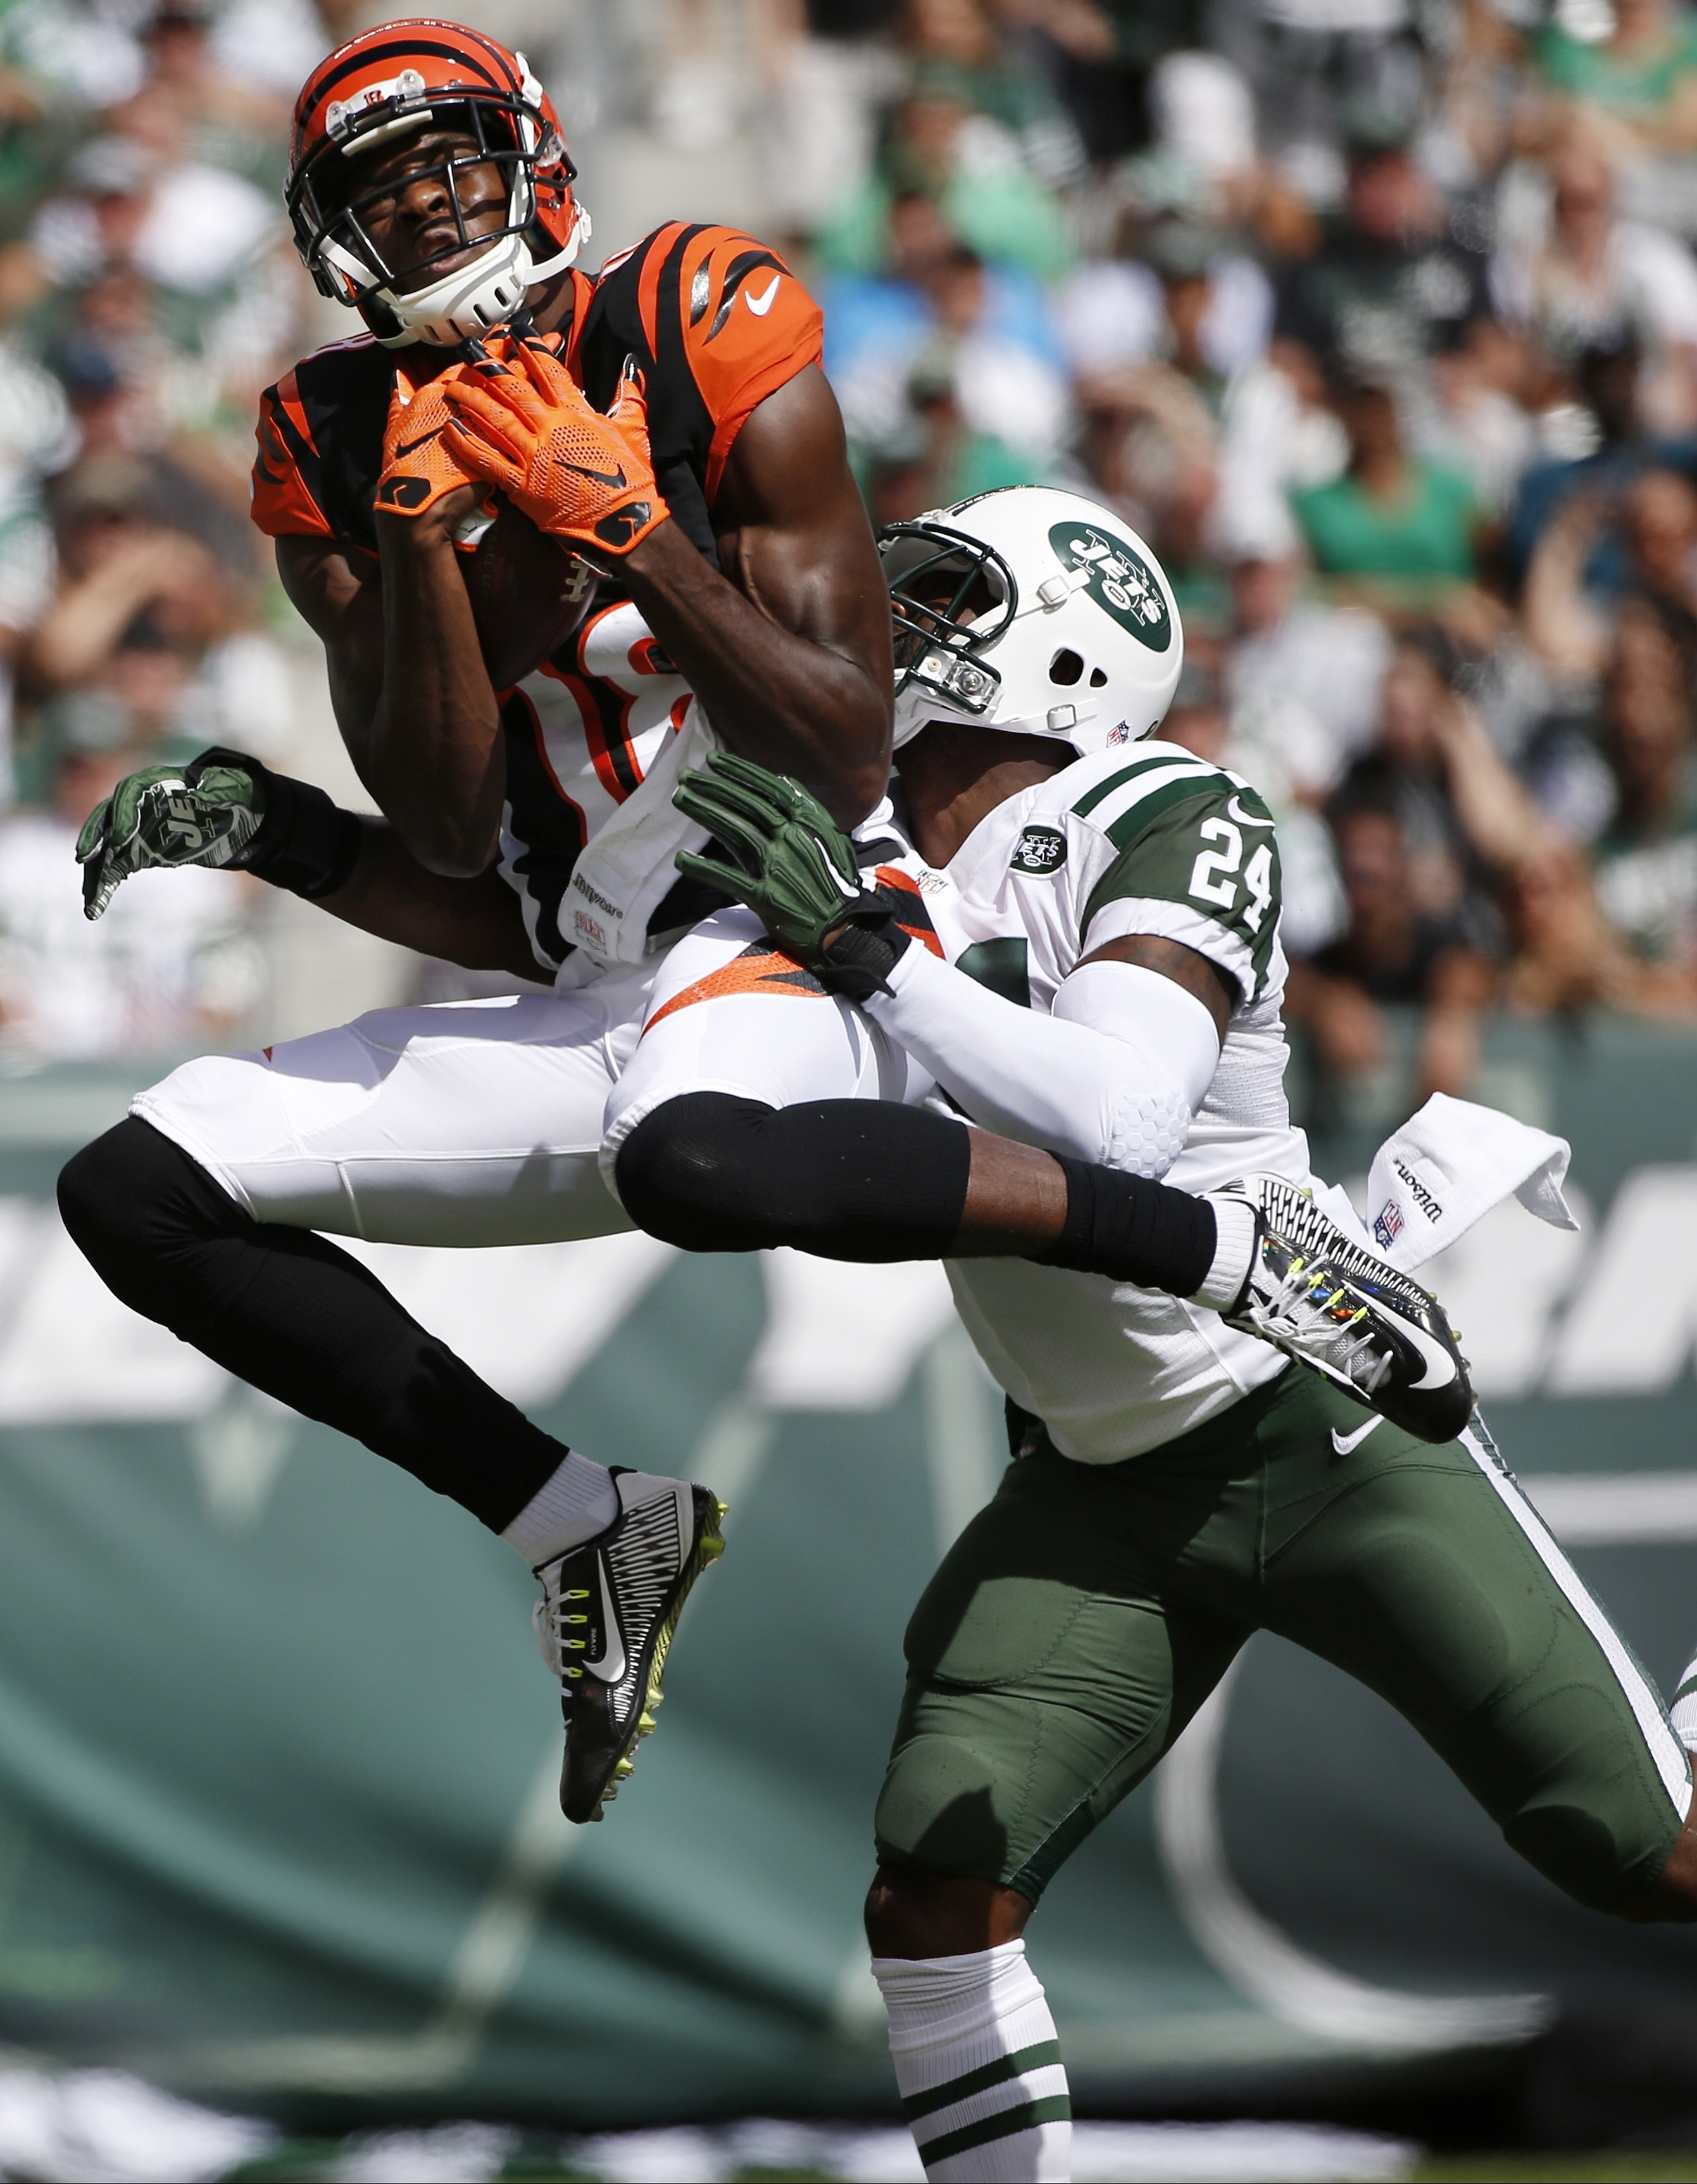 Cincinnati Bengals' A.J. Green (18) catches a pass in front of New York Jets' Darrelle Revis (24) during the first half of an NFL football game Sunday, Sept. 11, 2016 in East Rutherford, N.J. Green scored a touchdown on the play. (AP Photo/Kathy Willens)